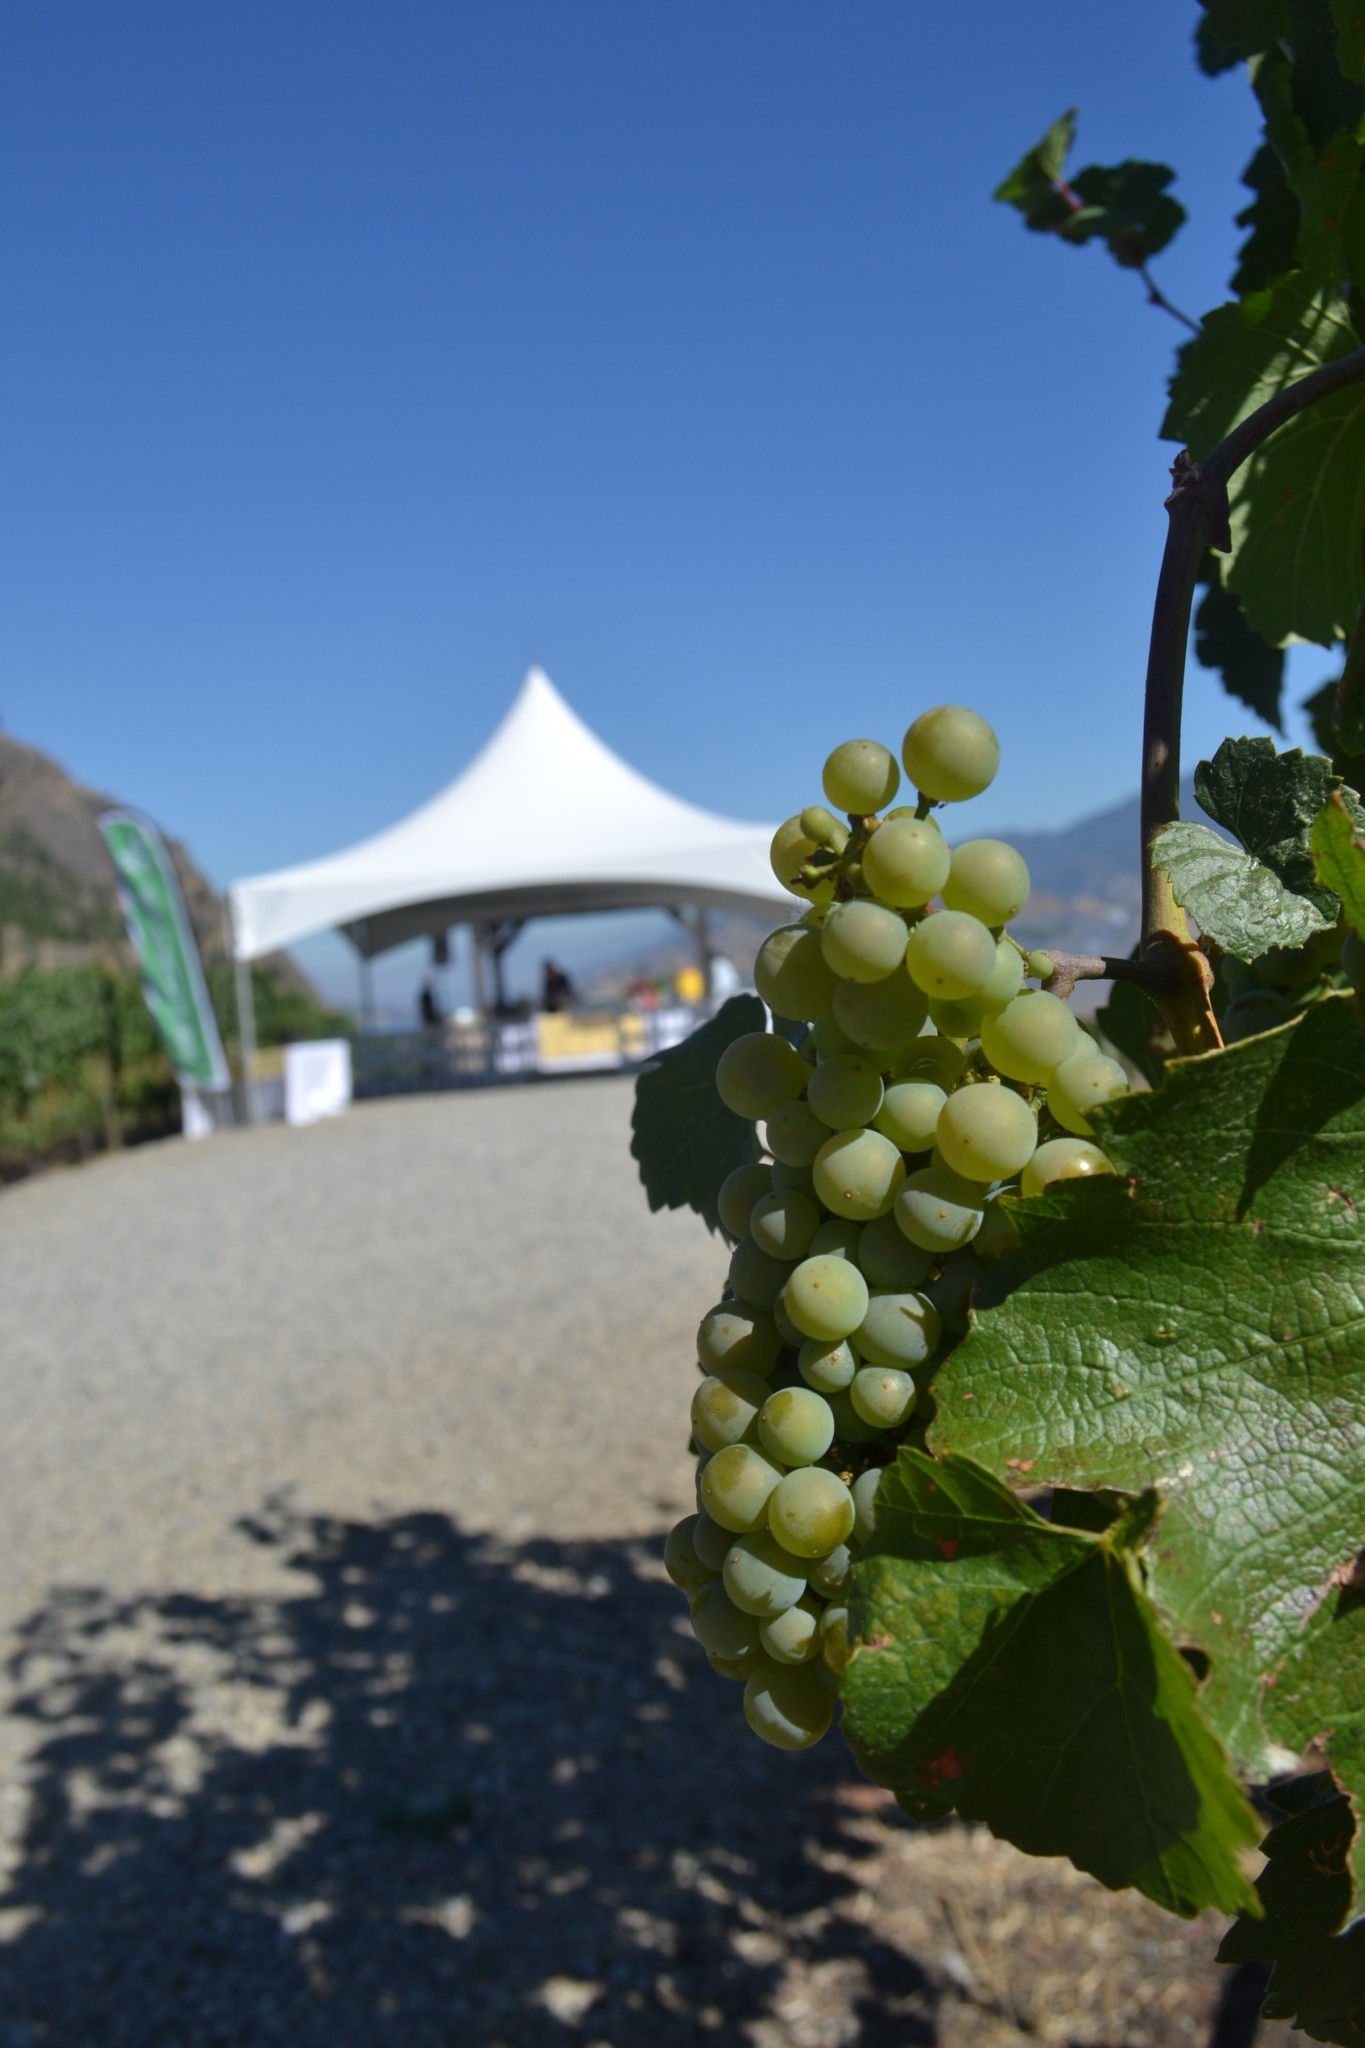 BC Wines Set to Shine Alongside Celebrity Chefs at Chef Meets BC Grape Taste of the Okanagan June 23